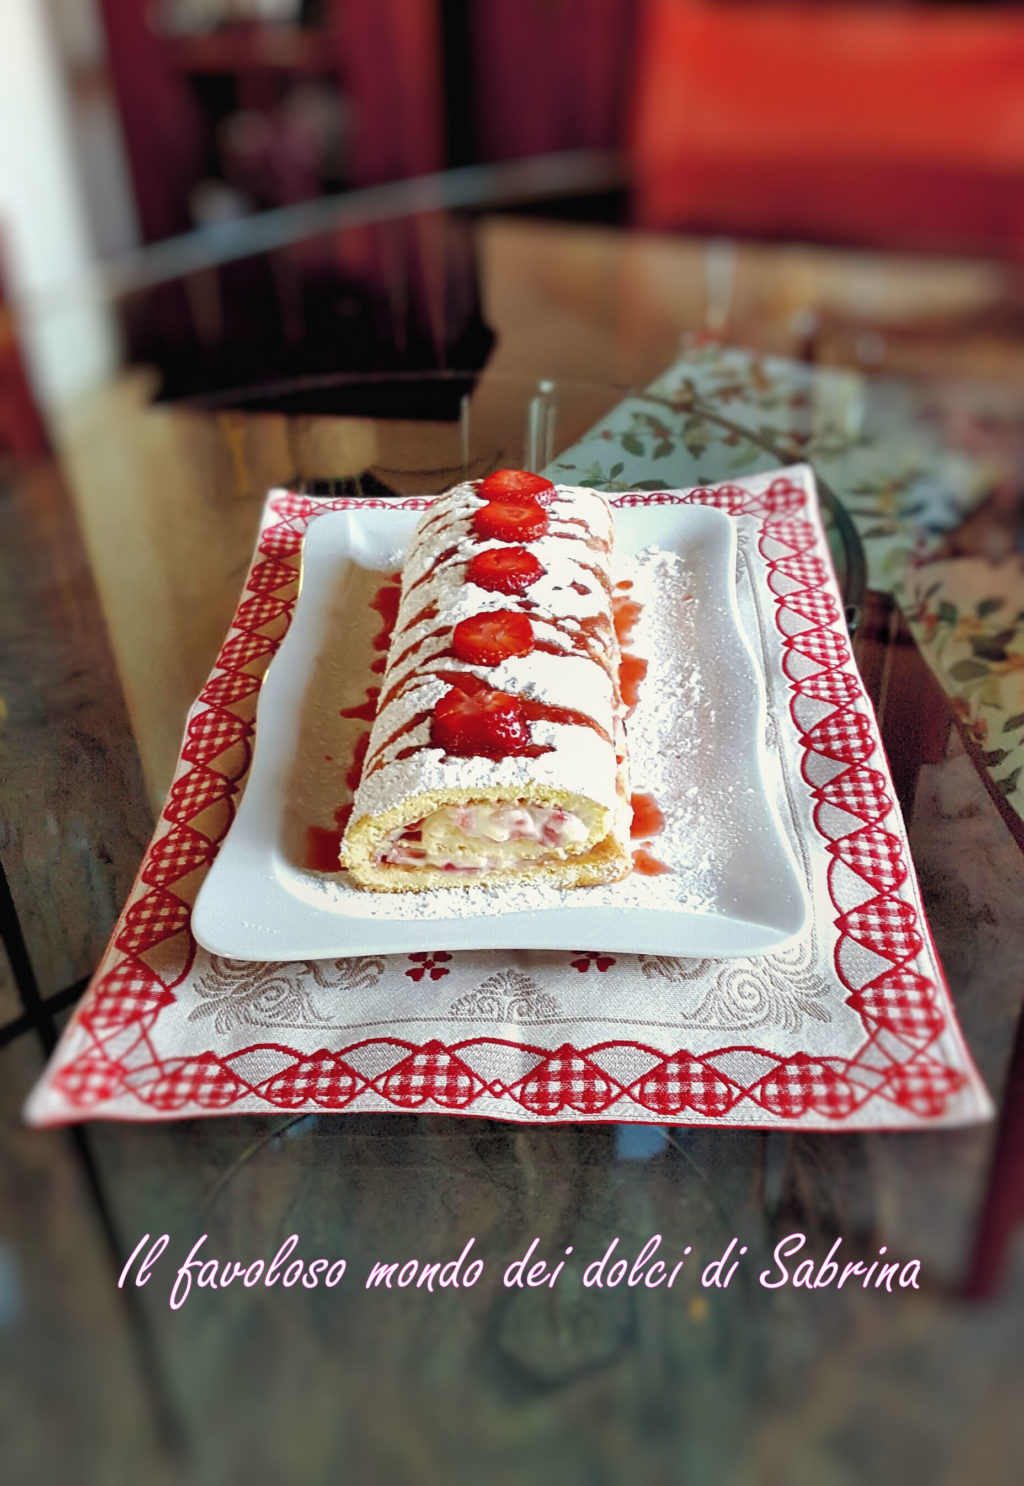 Rotolo farcito con fragole e crema chantilly all'italiana